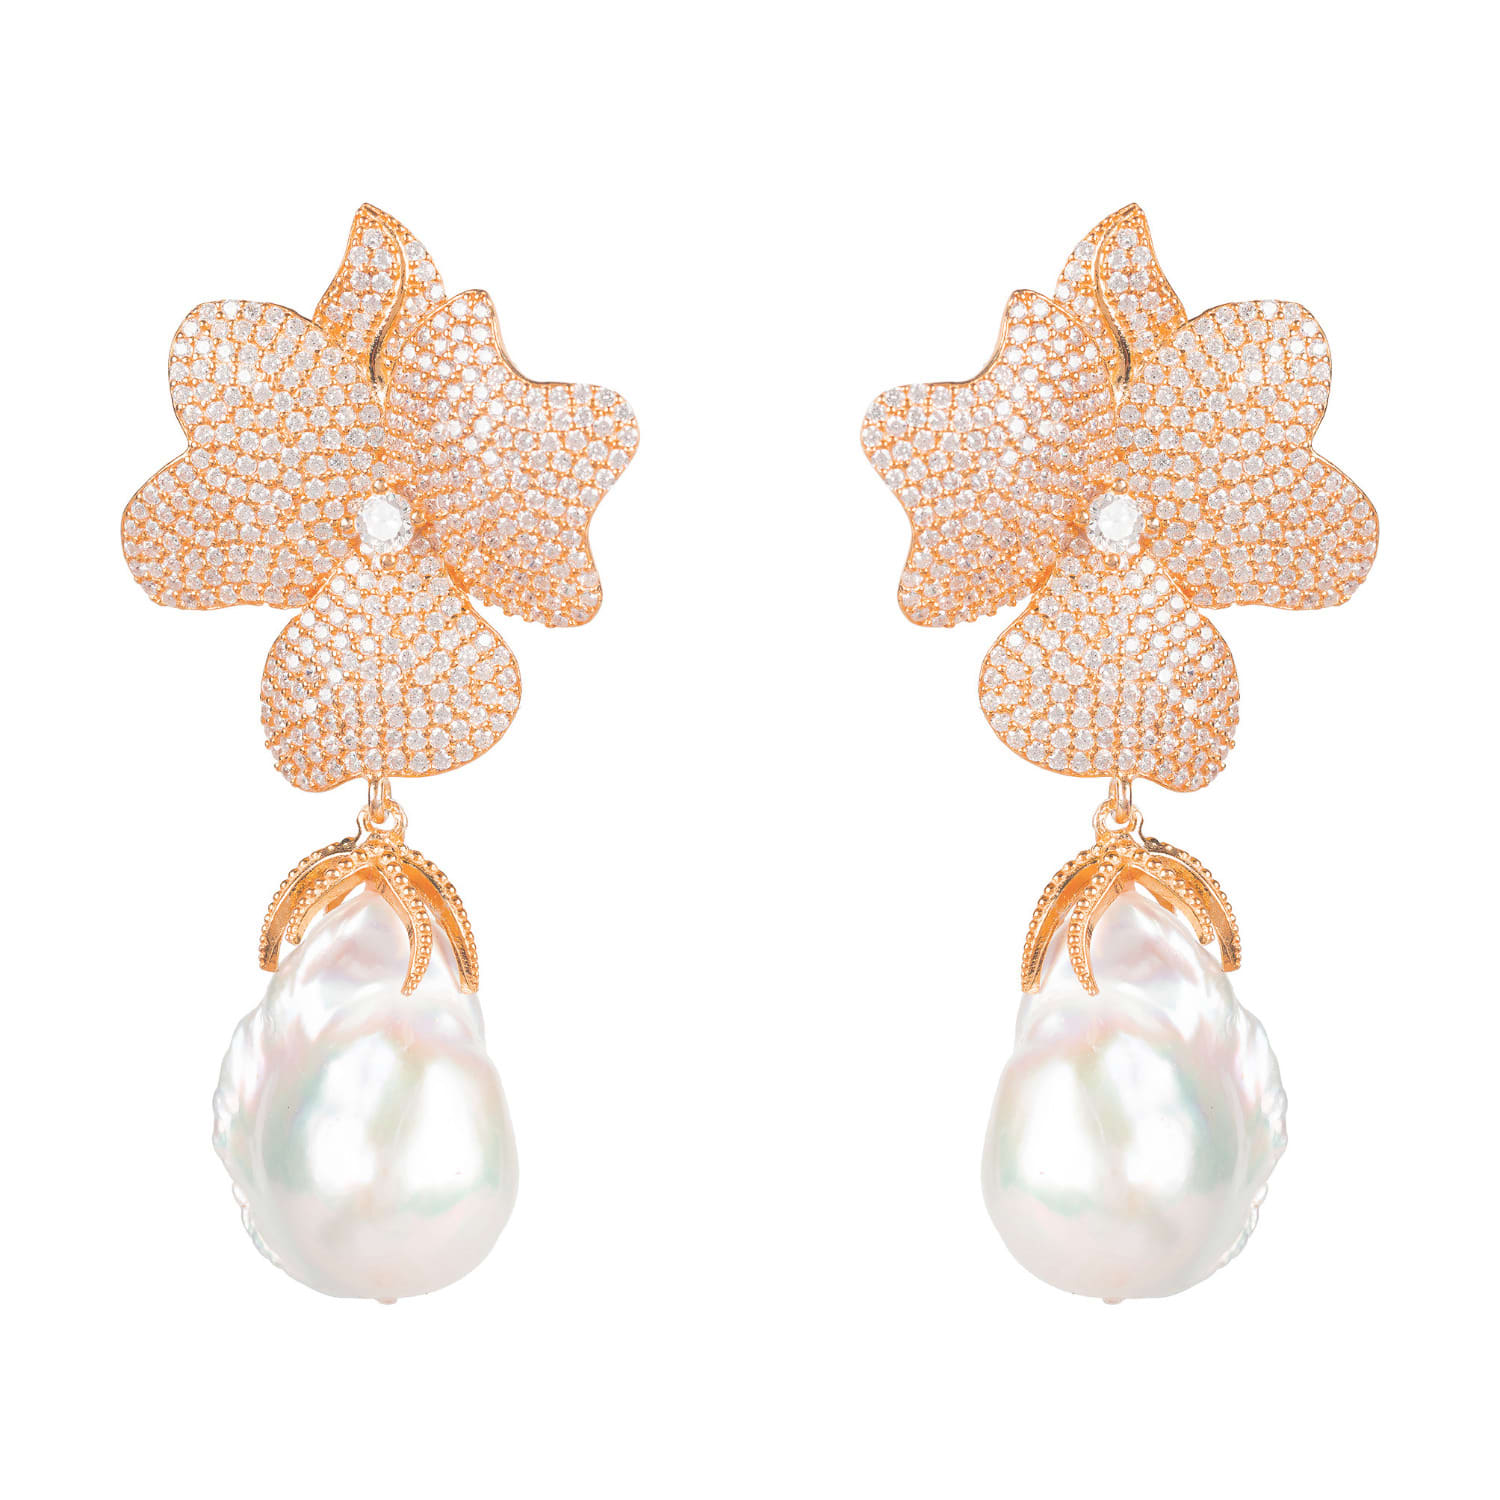 Floral Earring Whit Pearl